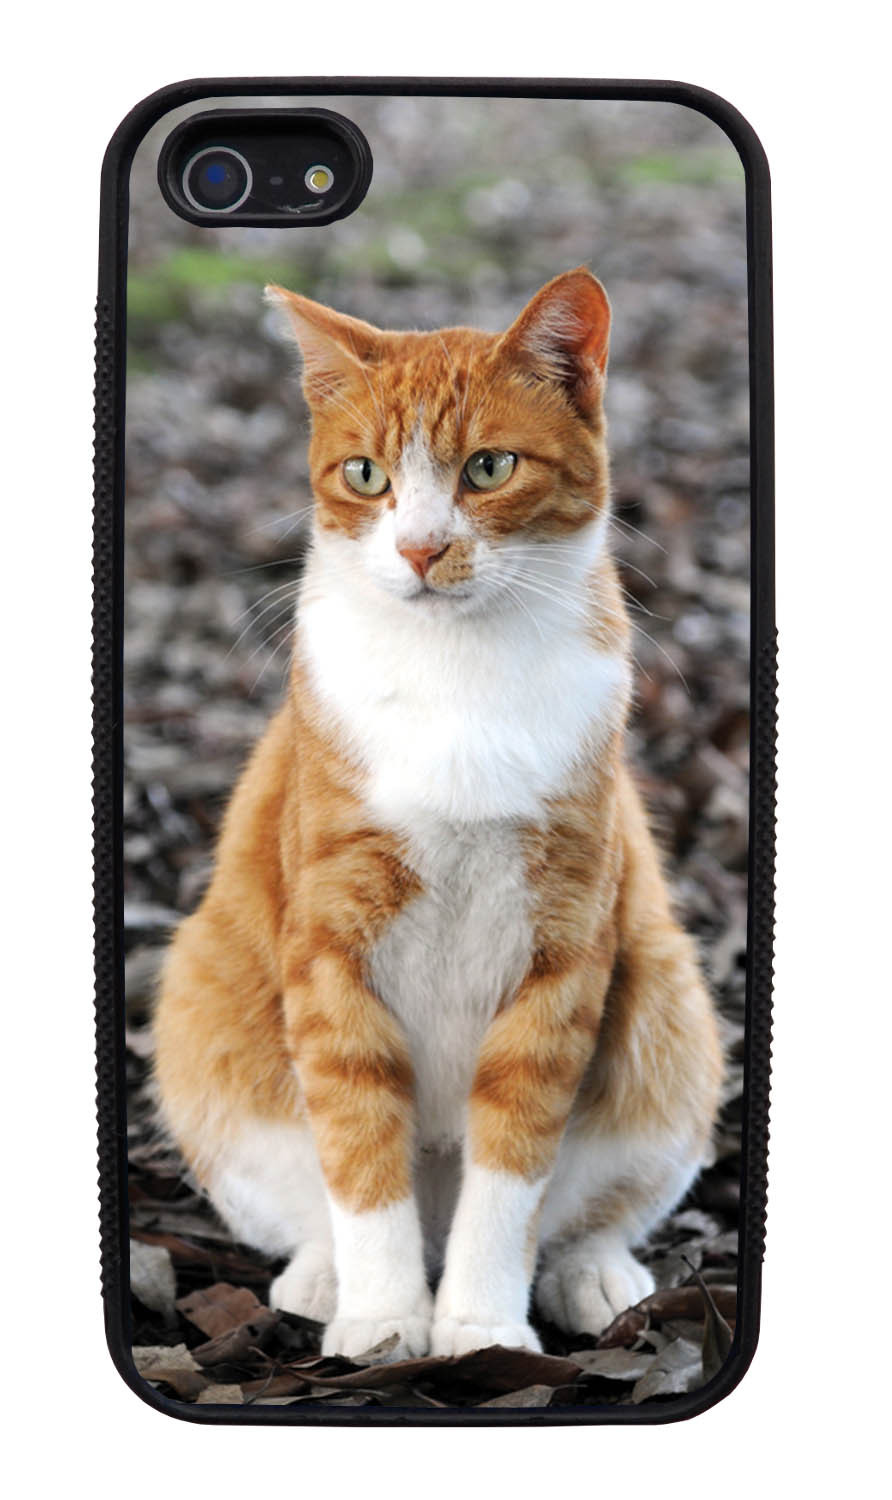 Apple iPhone 5 / 5S Cat Case - Sitting Cat Photo - Cute Pictures - Black Slim Rubber Case